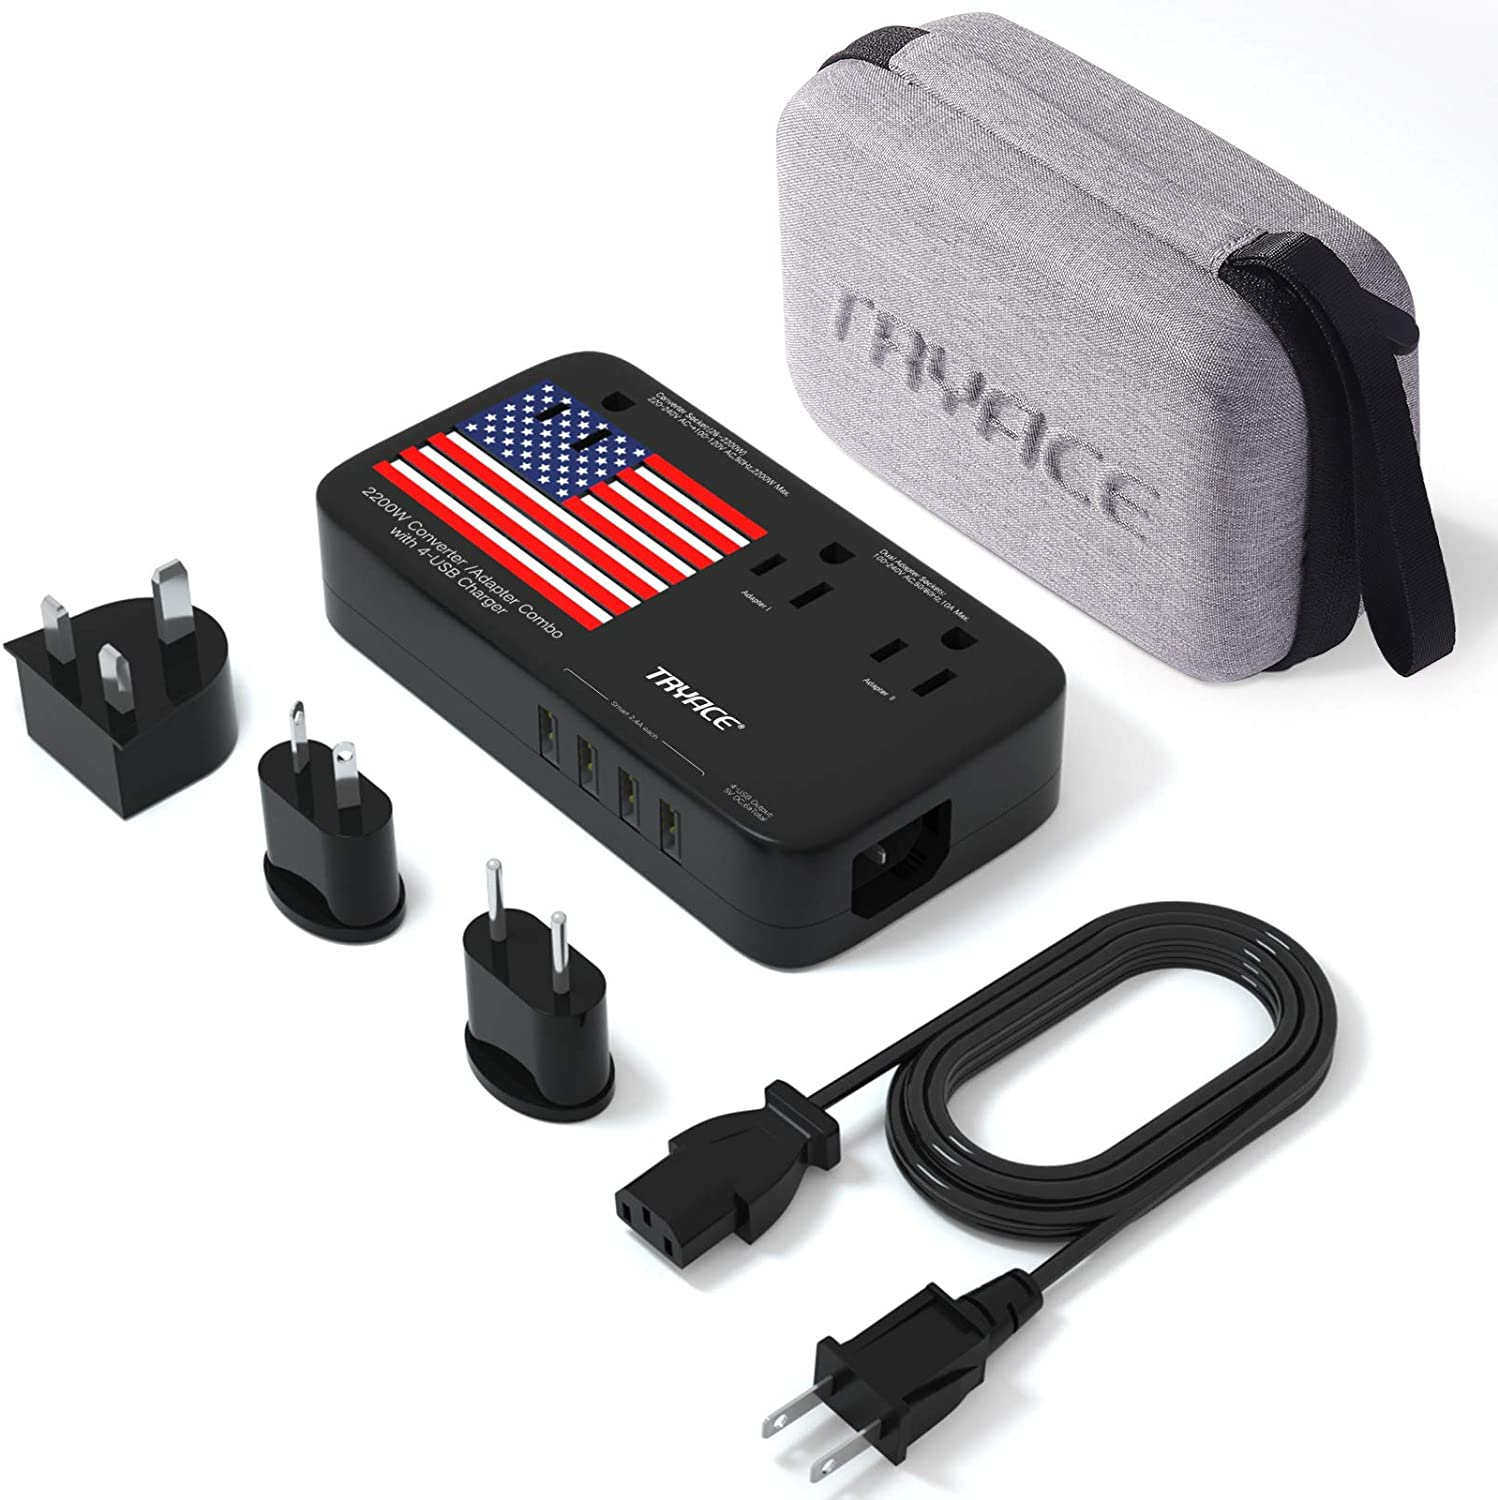 TRYACE 2200W Travel Voltage Converter Adapter 4-Po Dual with Max 77% OFF Rapid rise 10A